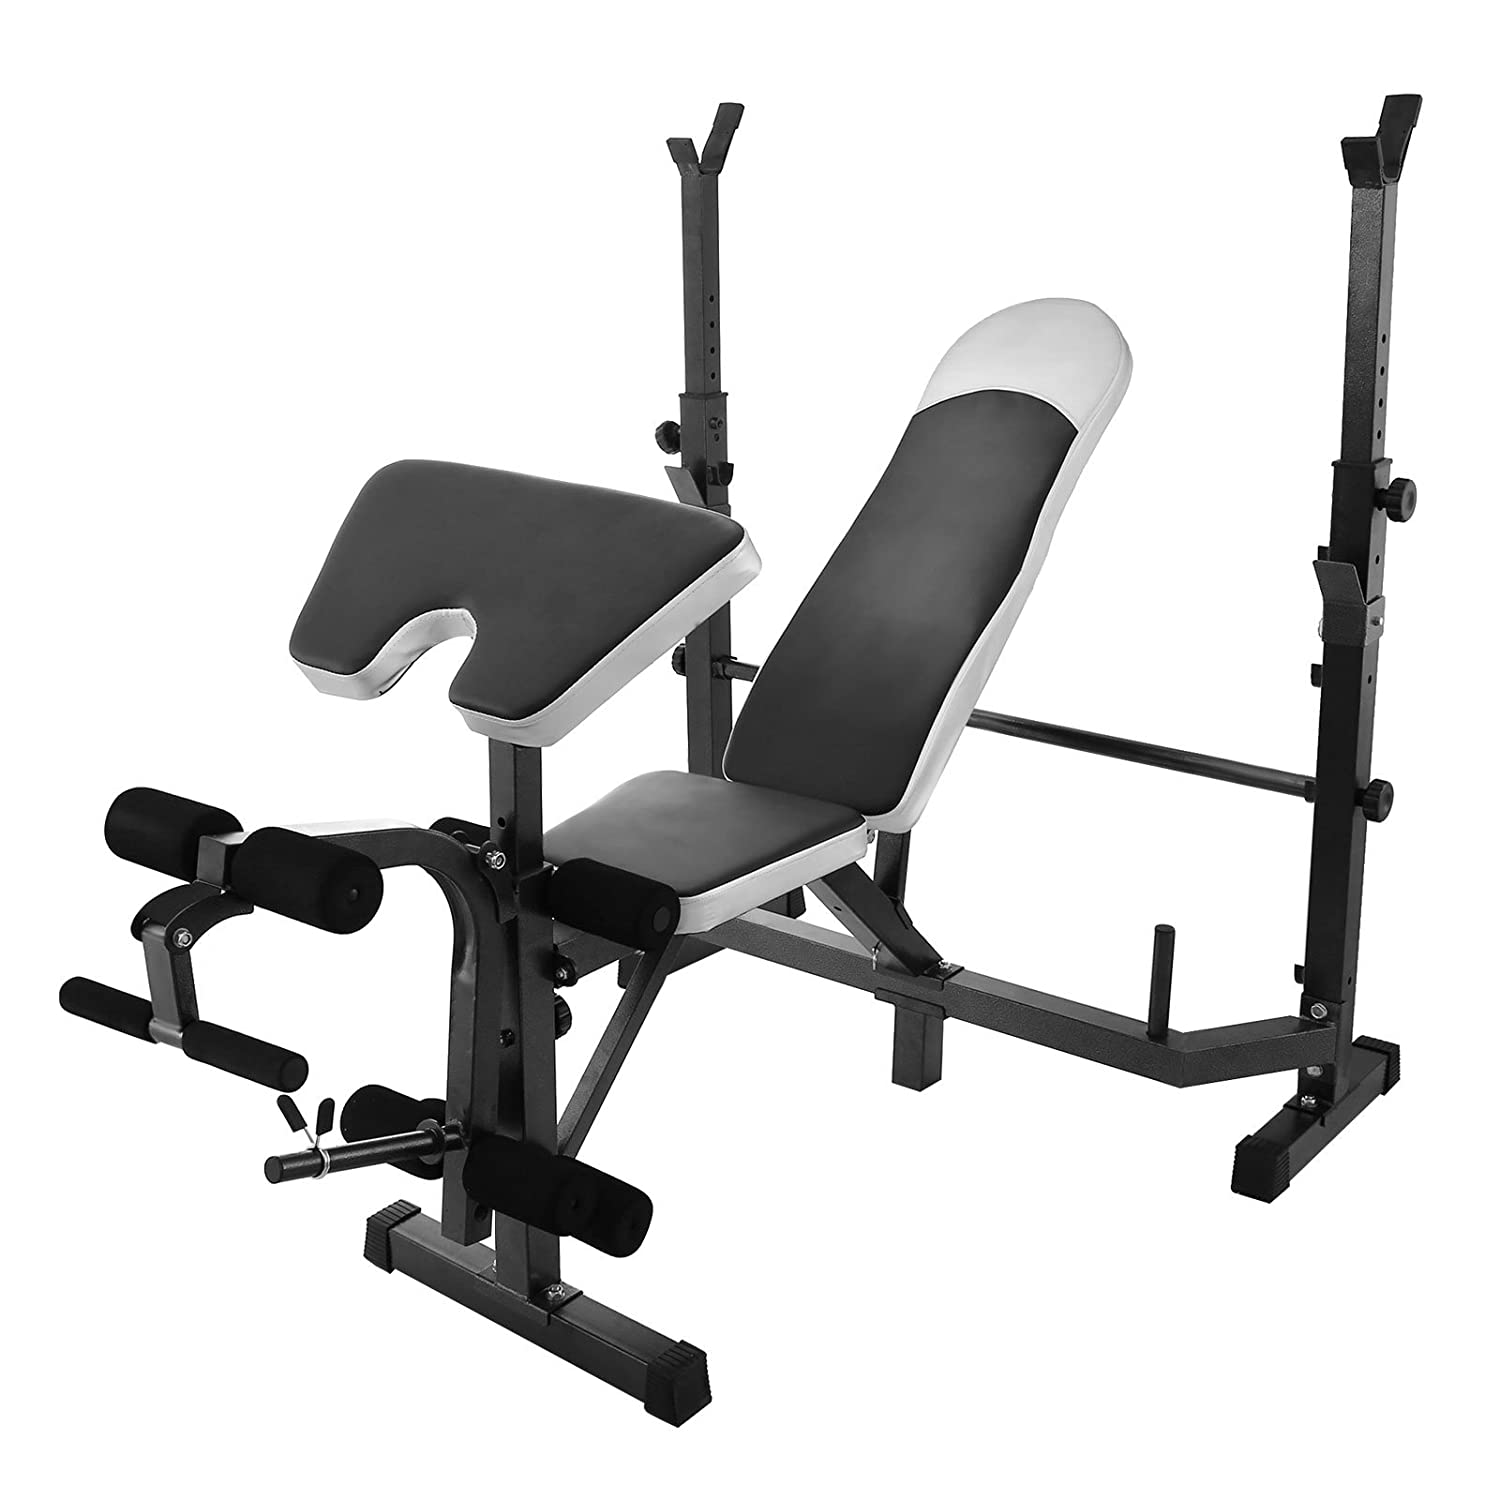 Amazon.com : VEVOR Weight Bench 660 LBS/882 LBS Capacity Multi Function  Adjustable Weight Bench With Leg Developer Workout Bench Fitness Equipment  Ideal For ...